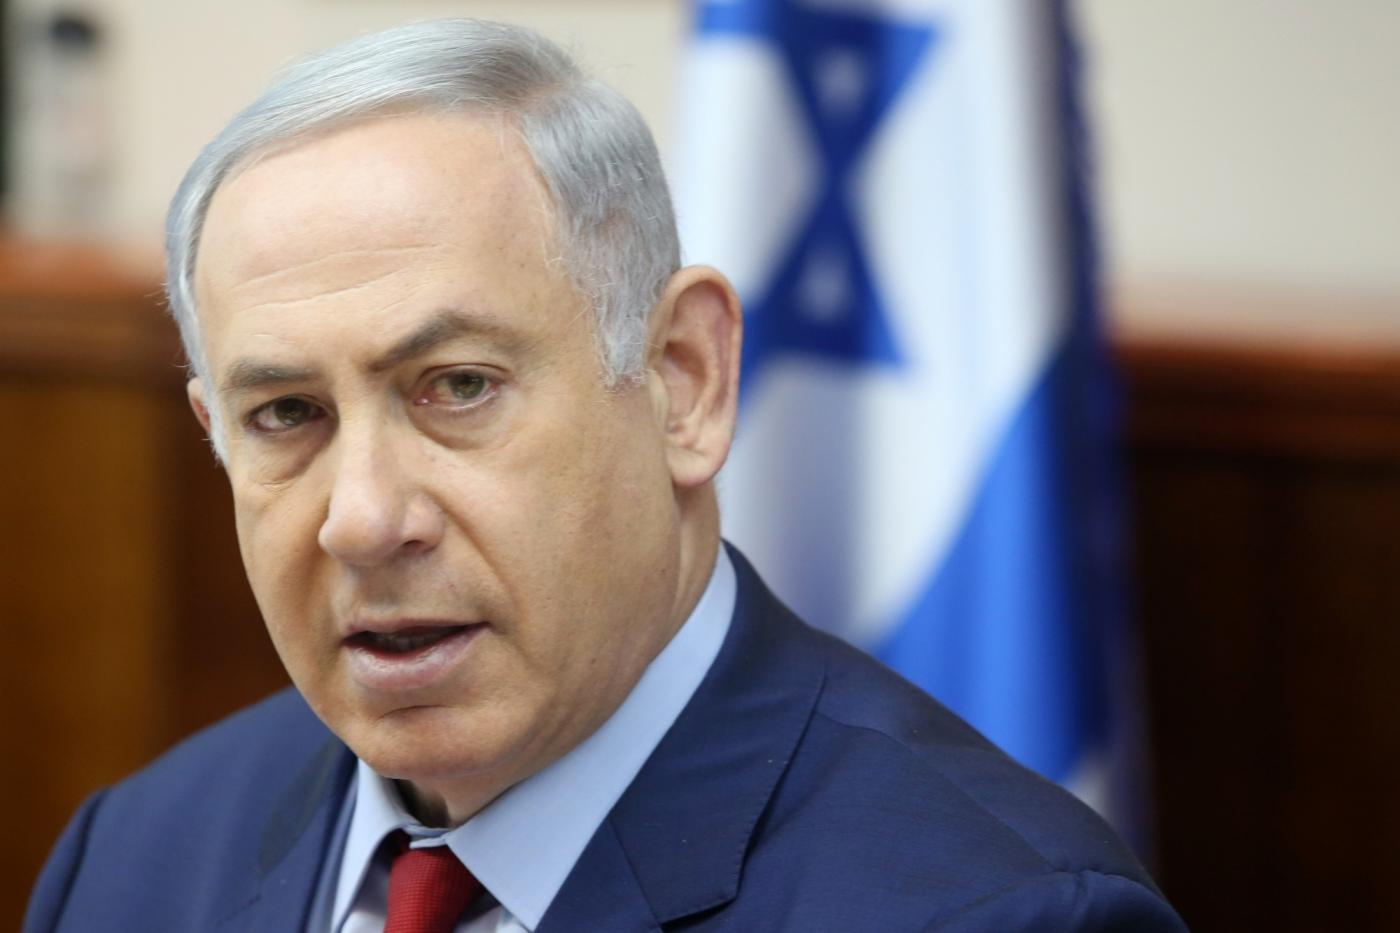 Prime Minister of Israel Benjamin Netanyahu. (File Photo: IANS) by .